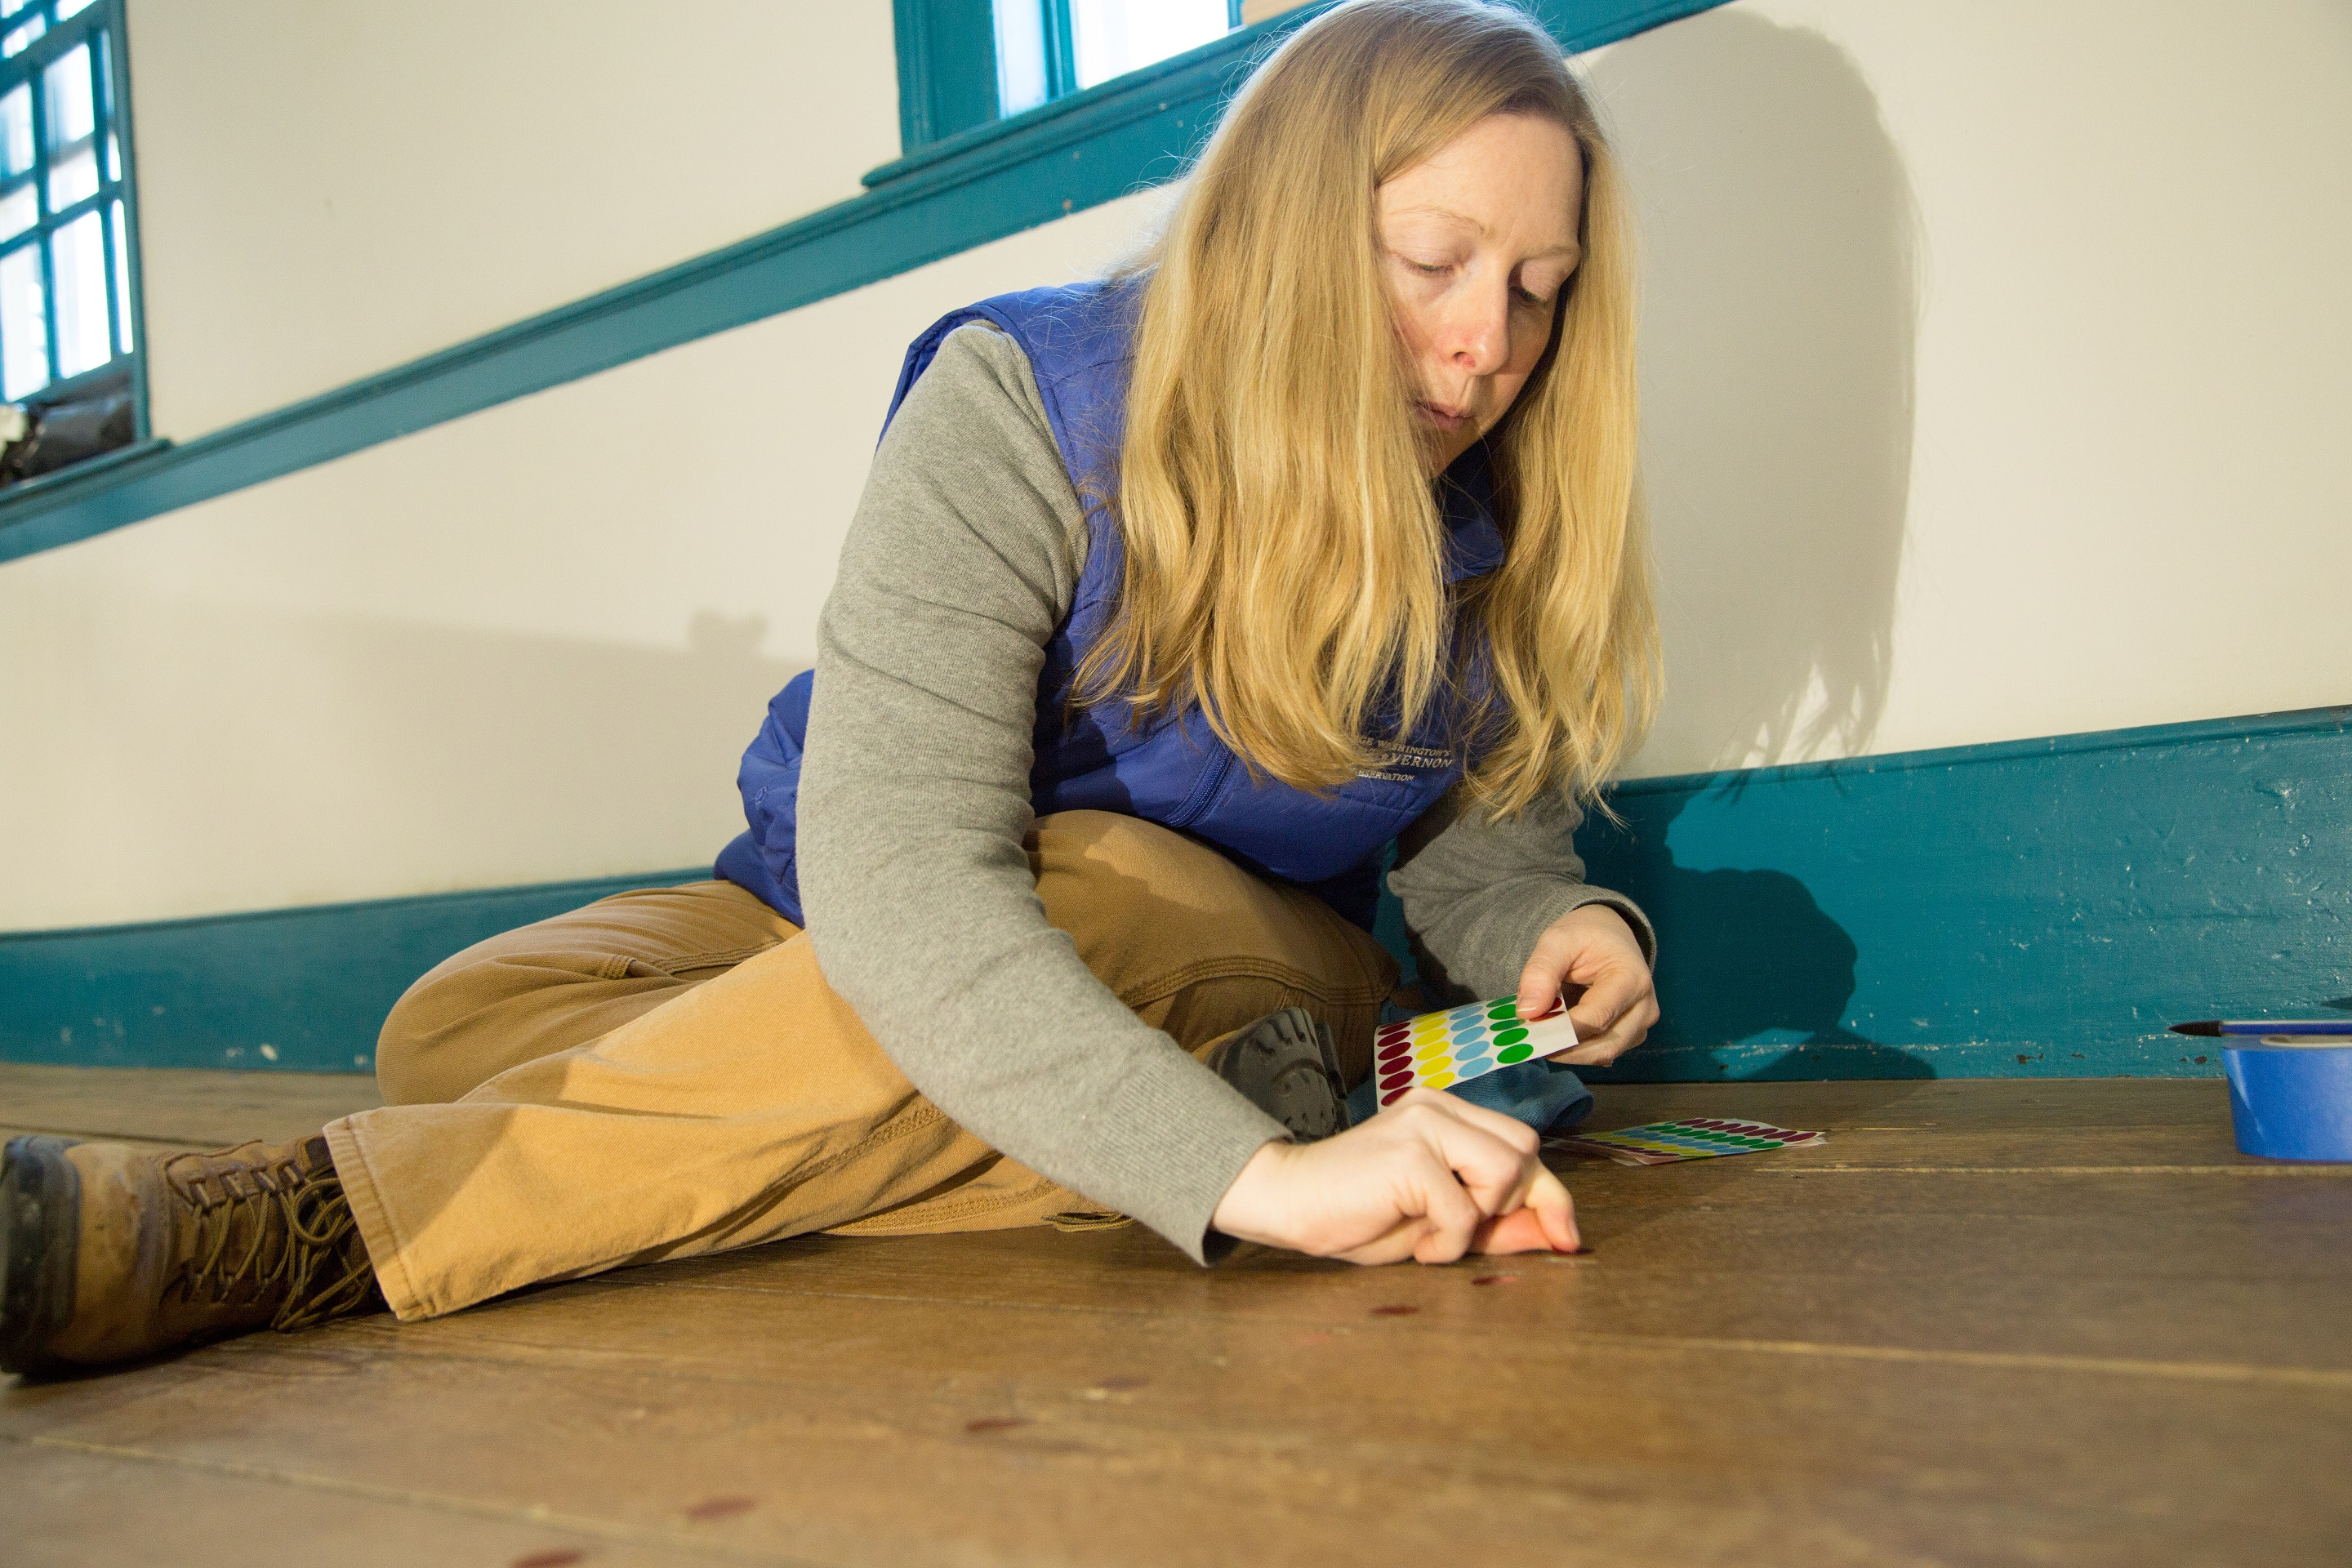 Architectural Historian, Caroline Spurry, applies color coded stickers to the floor to identify the floor nail types.